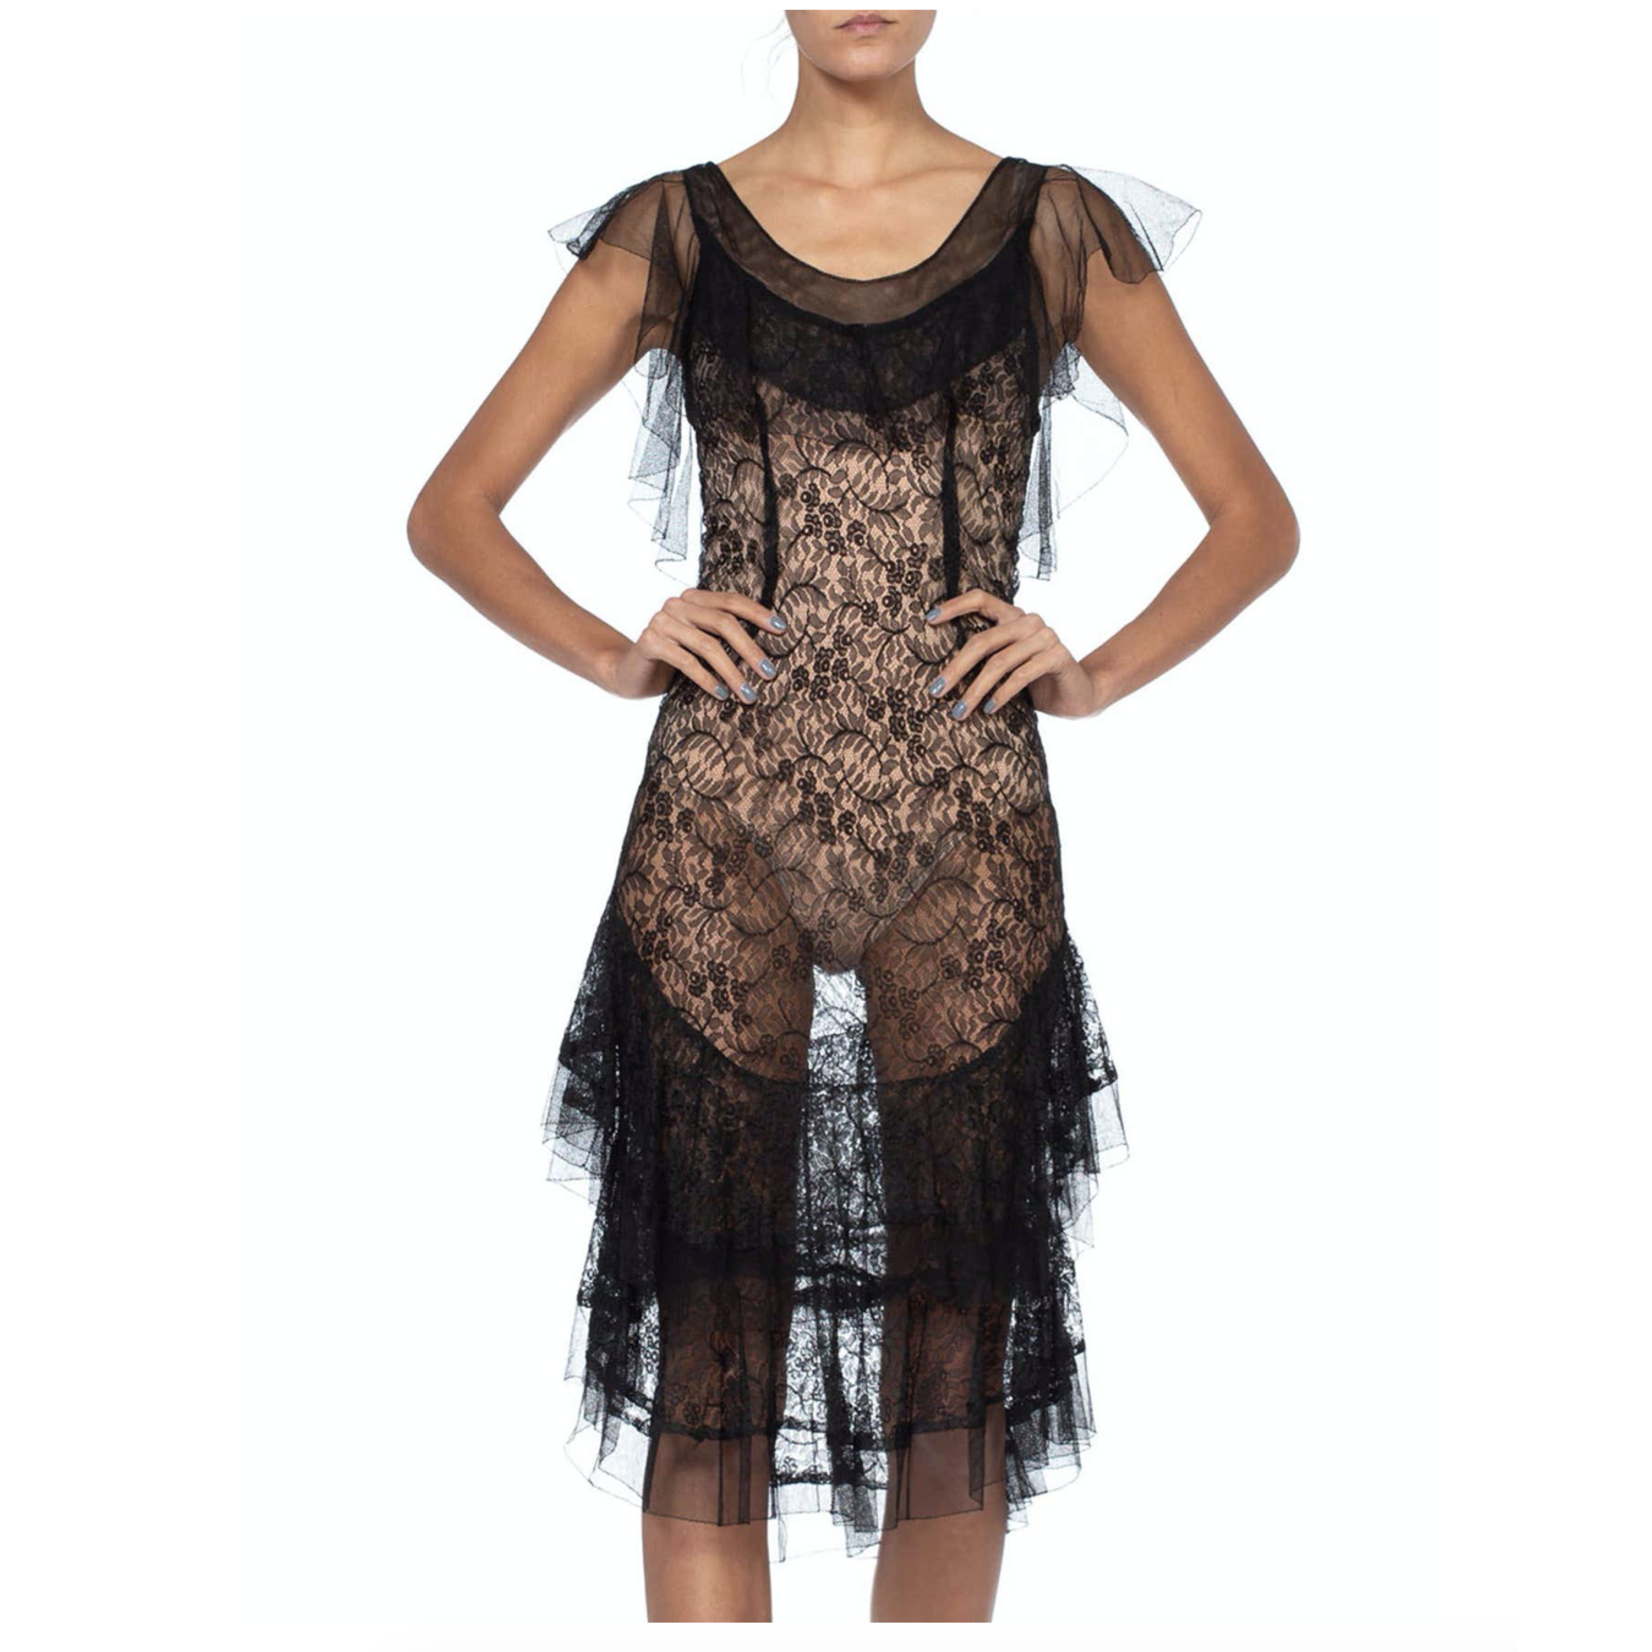 Wyld Blue Vintage 1930s Black Sheer Silk Chantilly Lace Cocktail Dress with Tulle Ruffles & a little stretch LD308ON0688